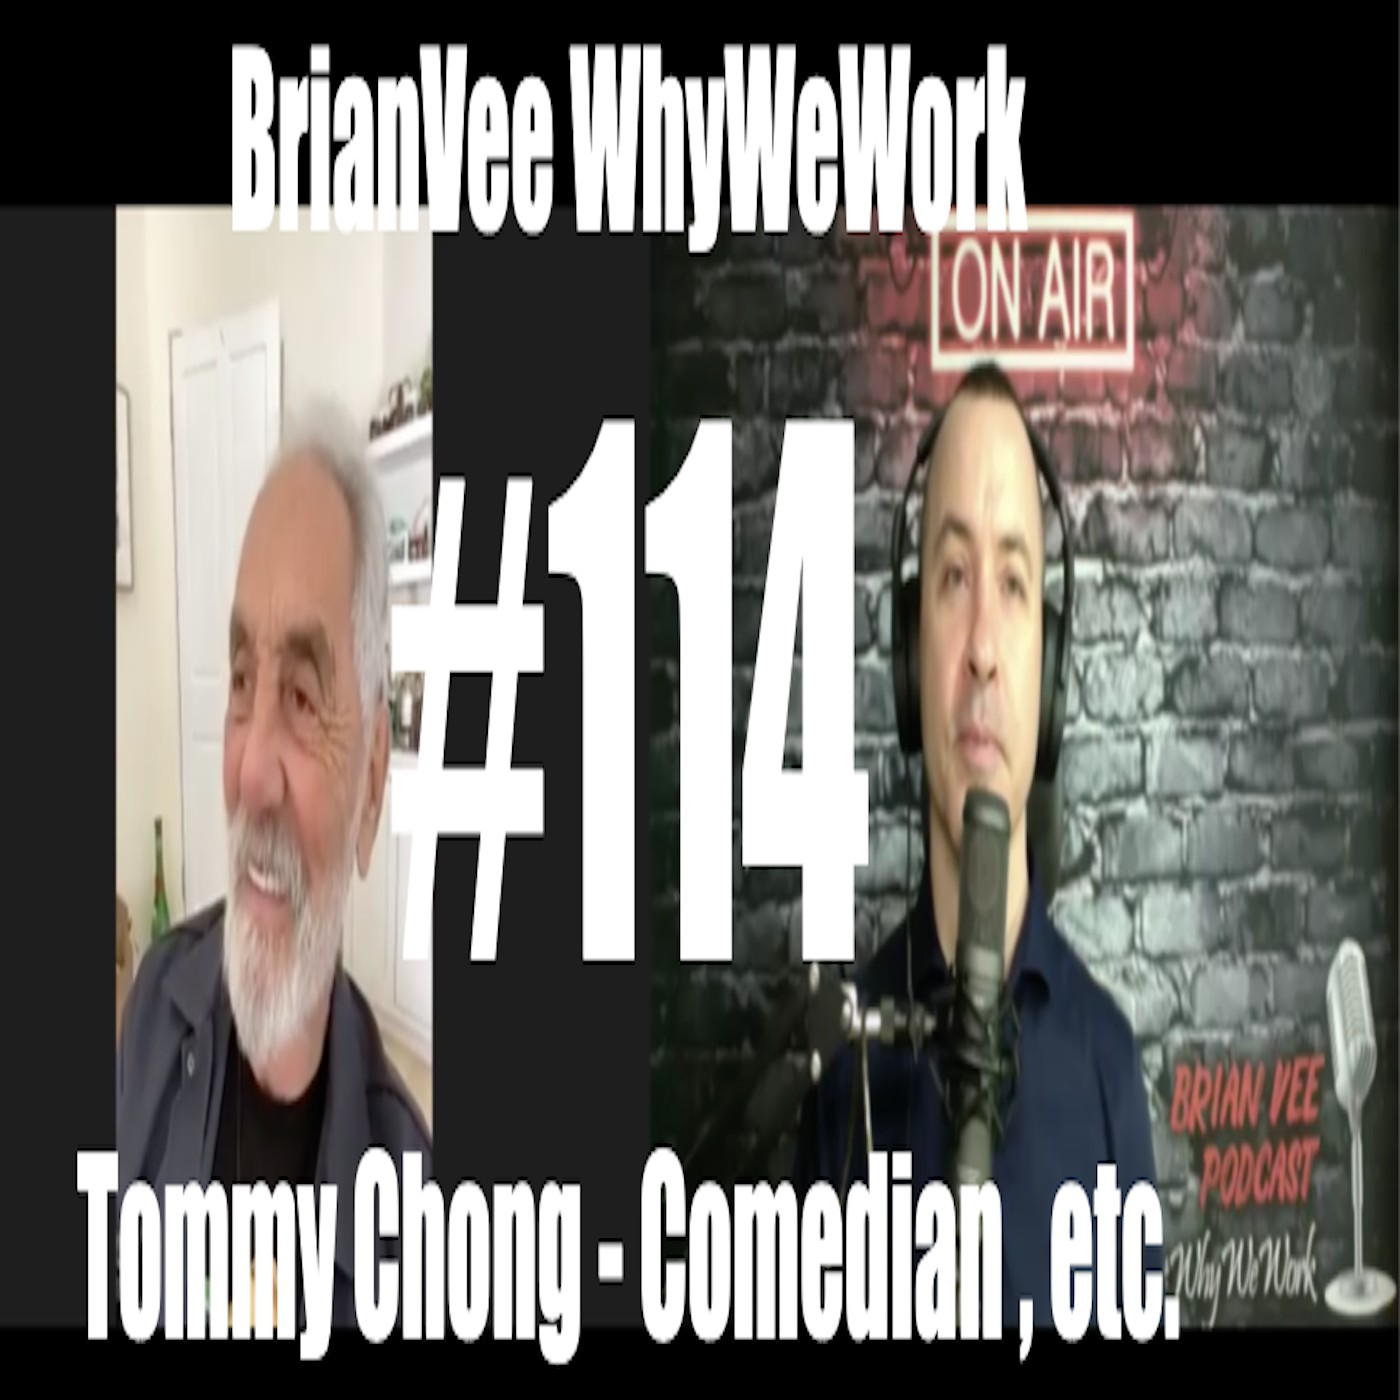 #114 Tommy Chong - Comedian - BrianVee WhyWeWork